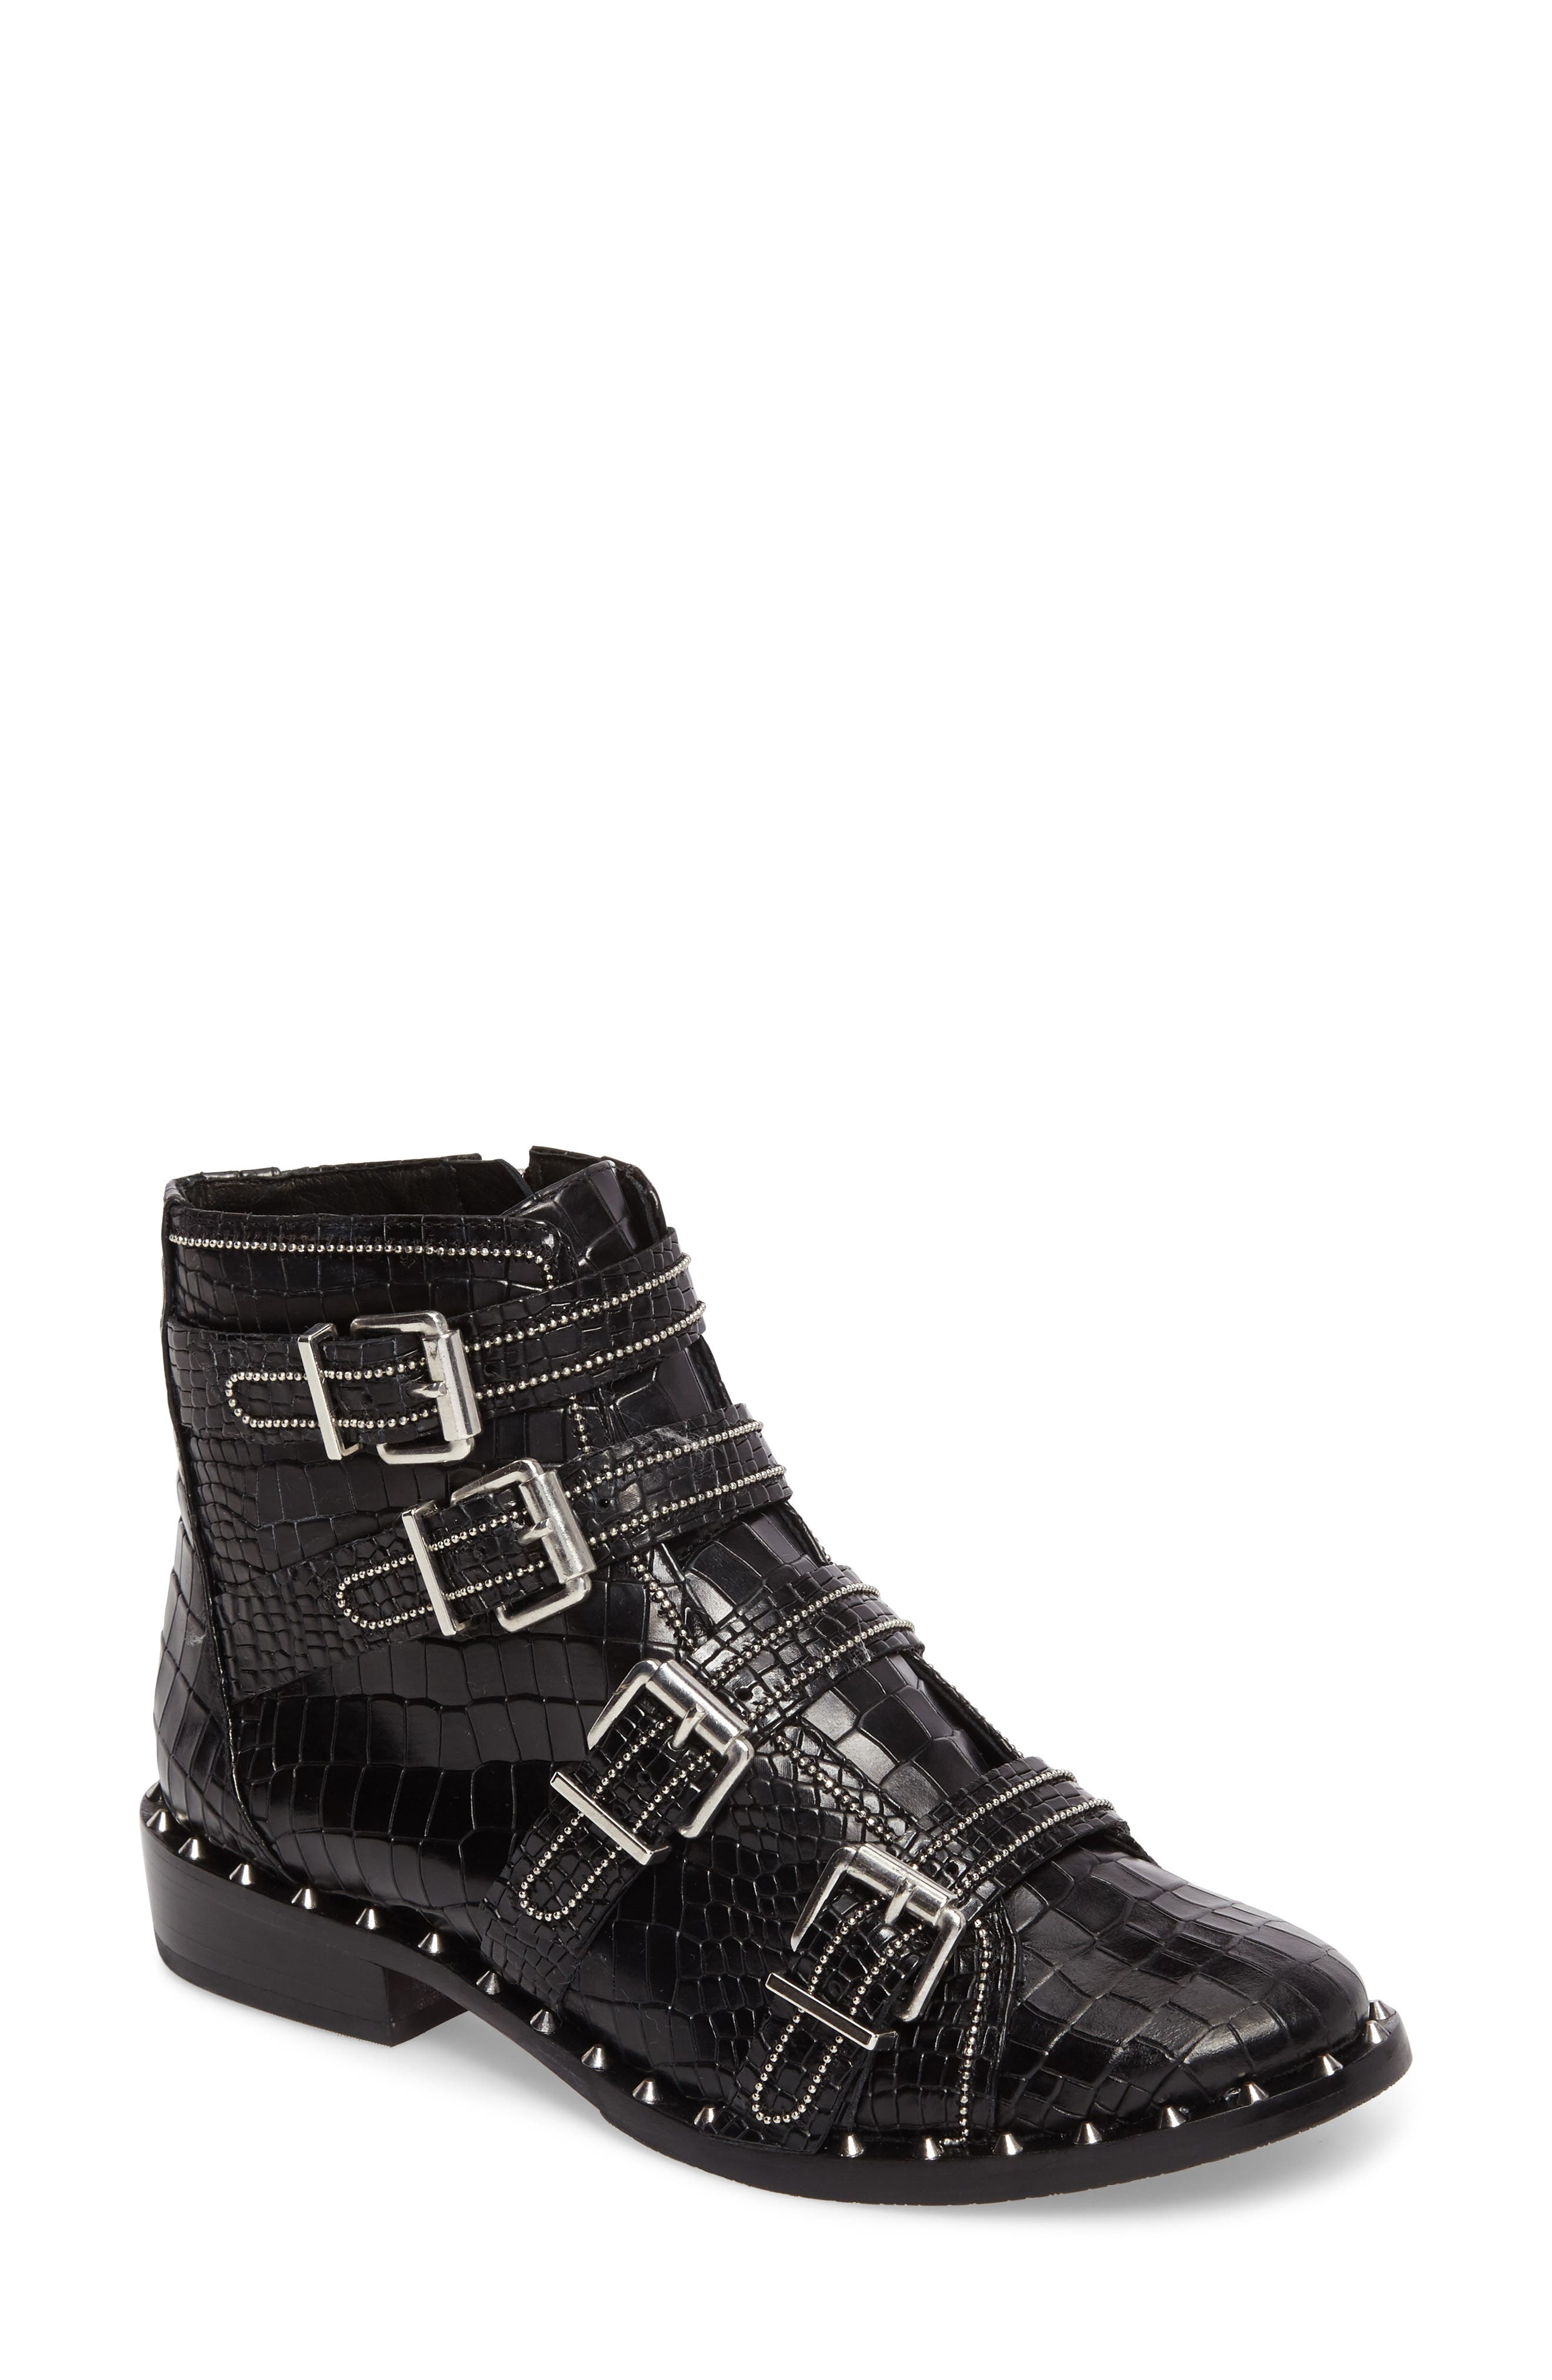 Darcey Studded Croc Embossed Bootie,                         Main,                         color, Black Croc Embossed Leather